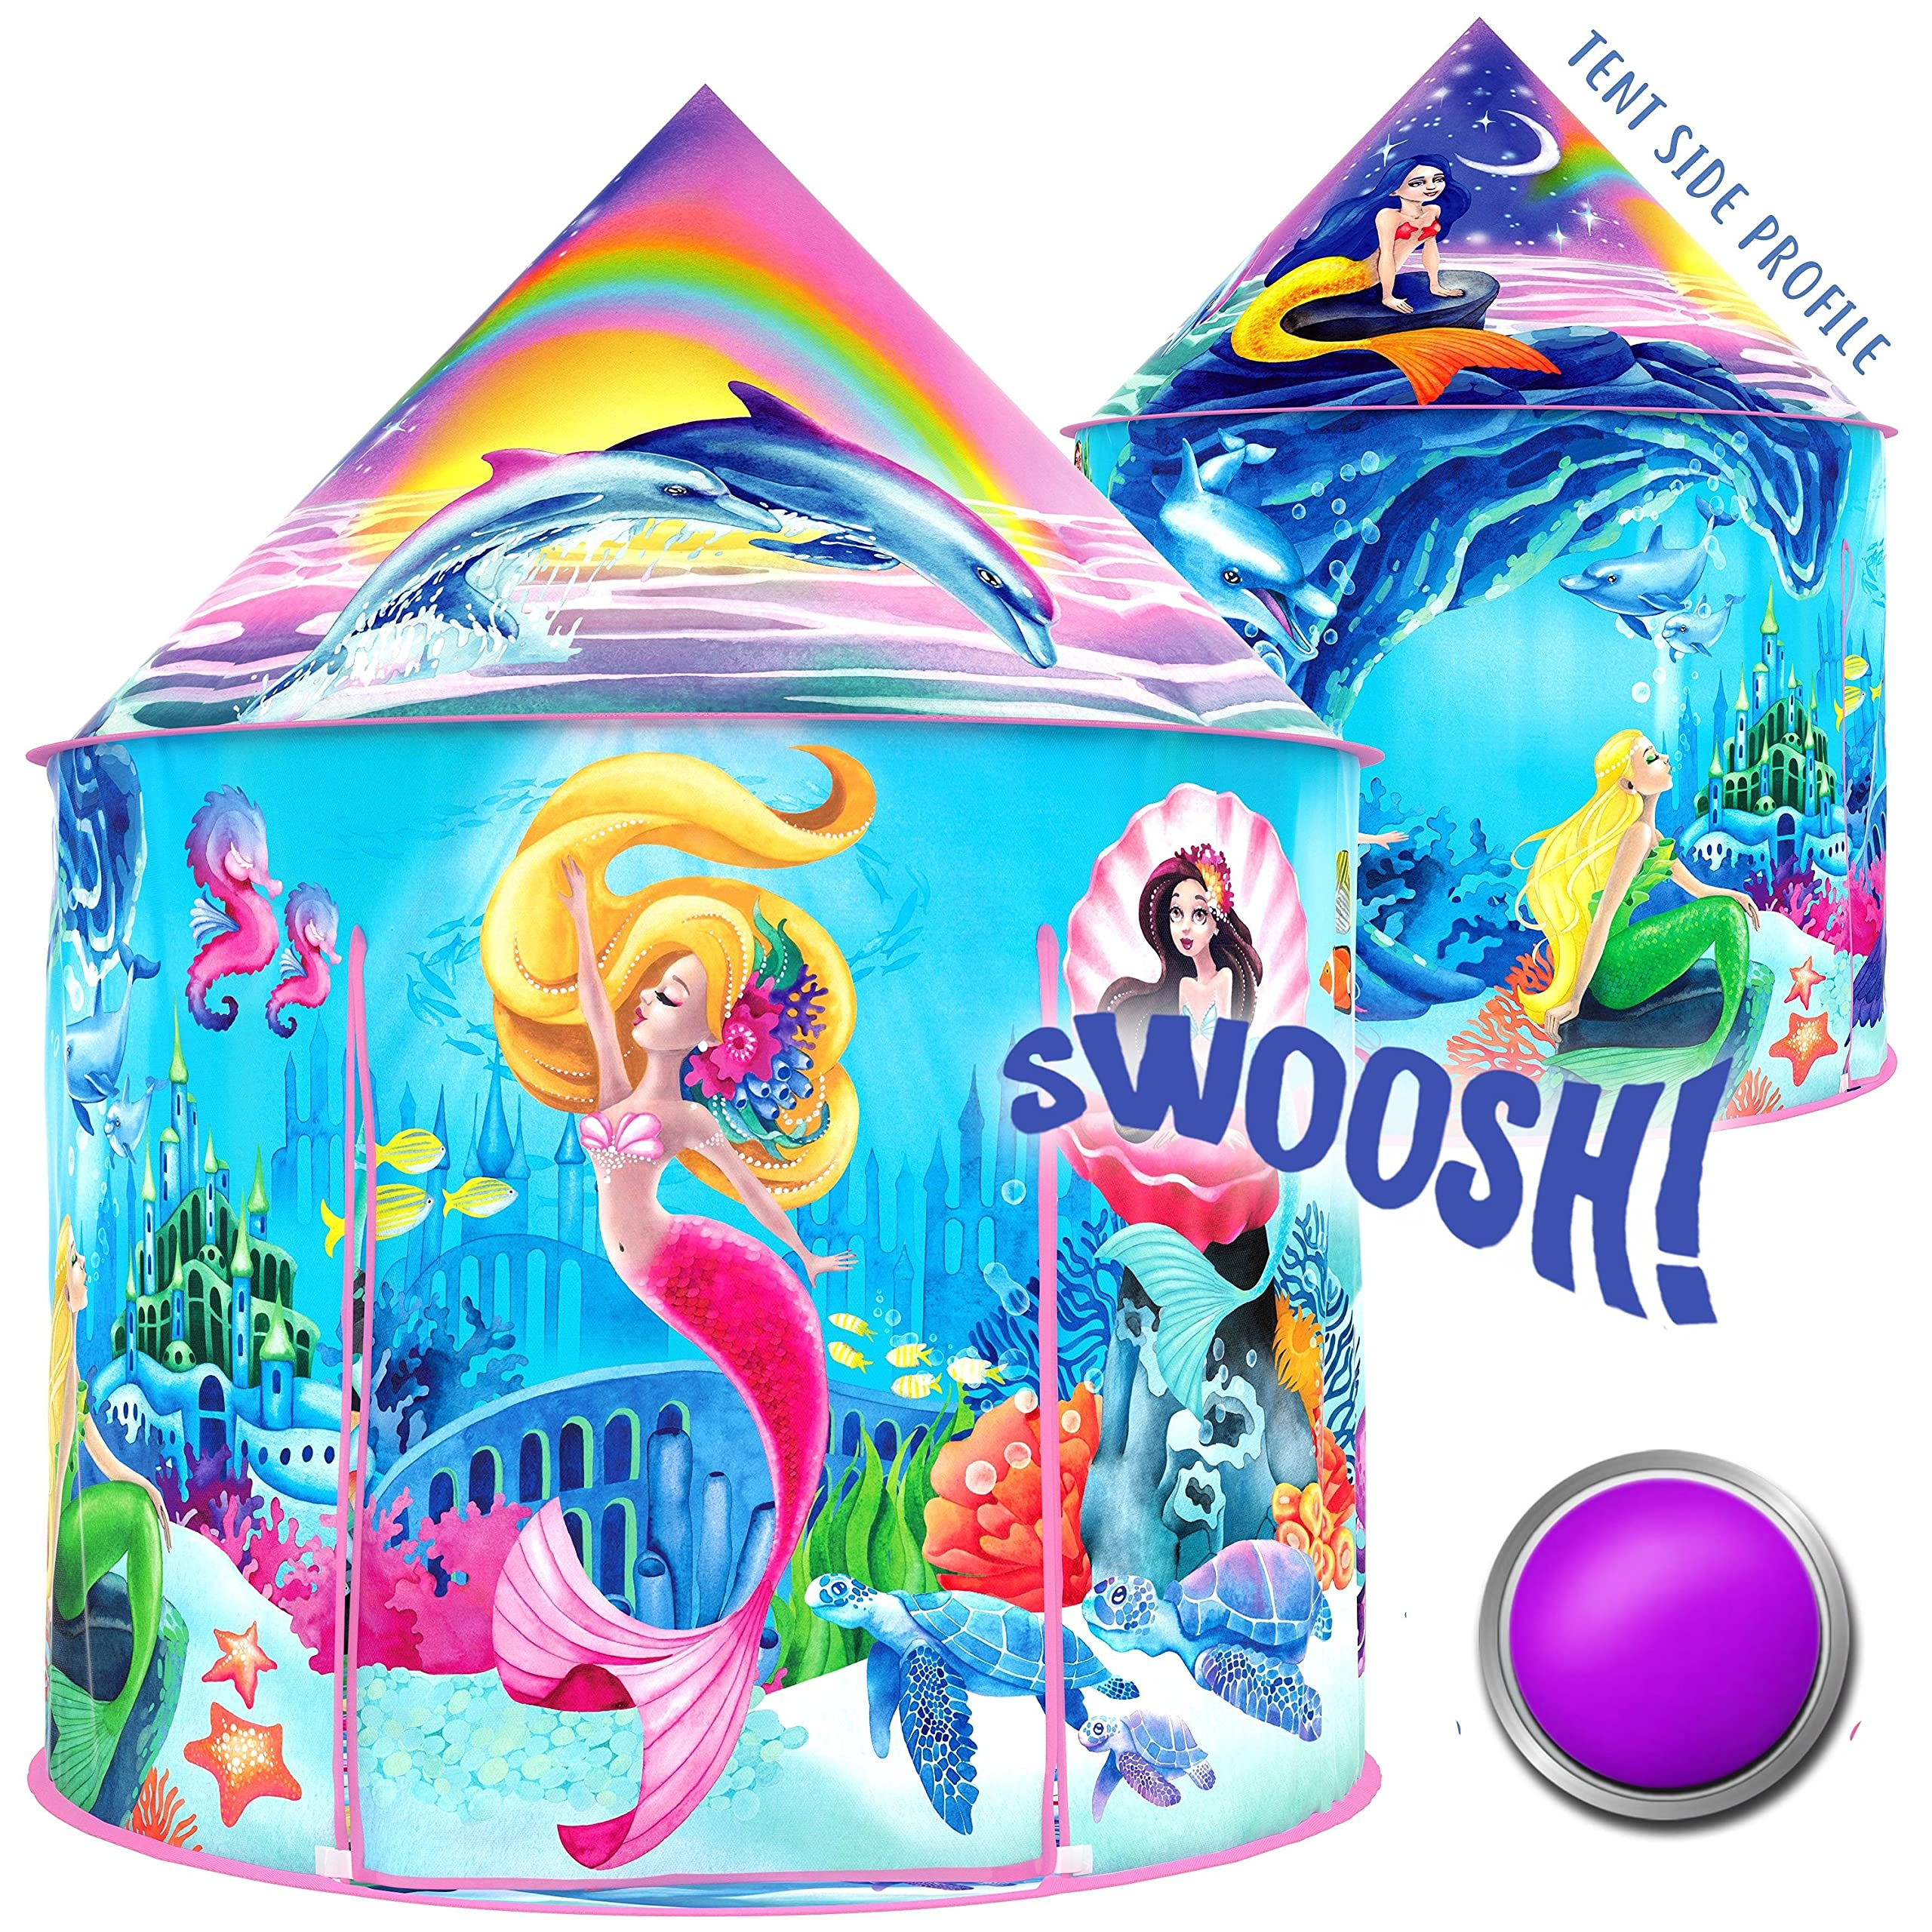 W&O Musical Mermaid Tent with Under-The-Sea Button, Magical Kids Play Tent, Mermaid Toys for Girls, Play Tents for Girls, Kids Tent, Outdoor & Indoor Tent for Kids, pop up Tent Kids, Tents for Kids